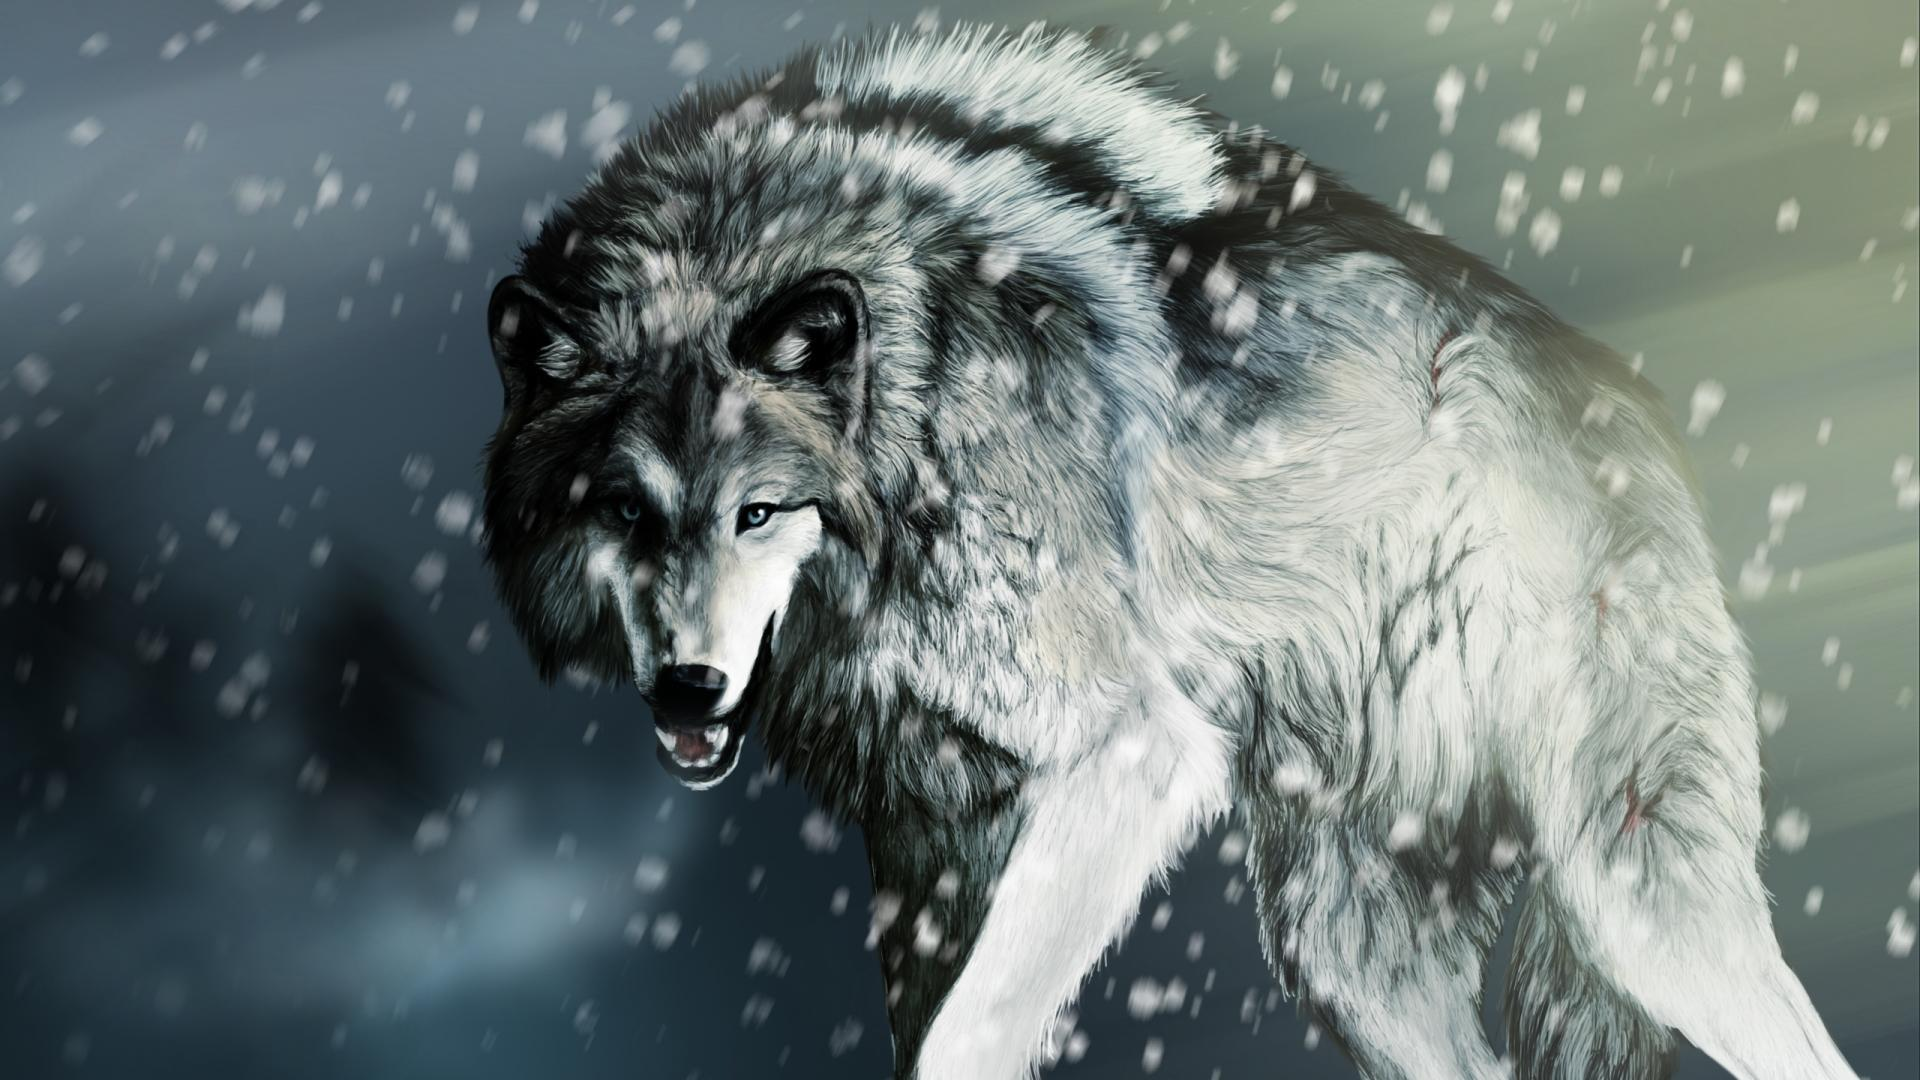 Image For > Snow Wolves Wallpapers